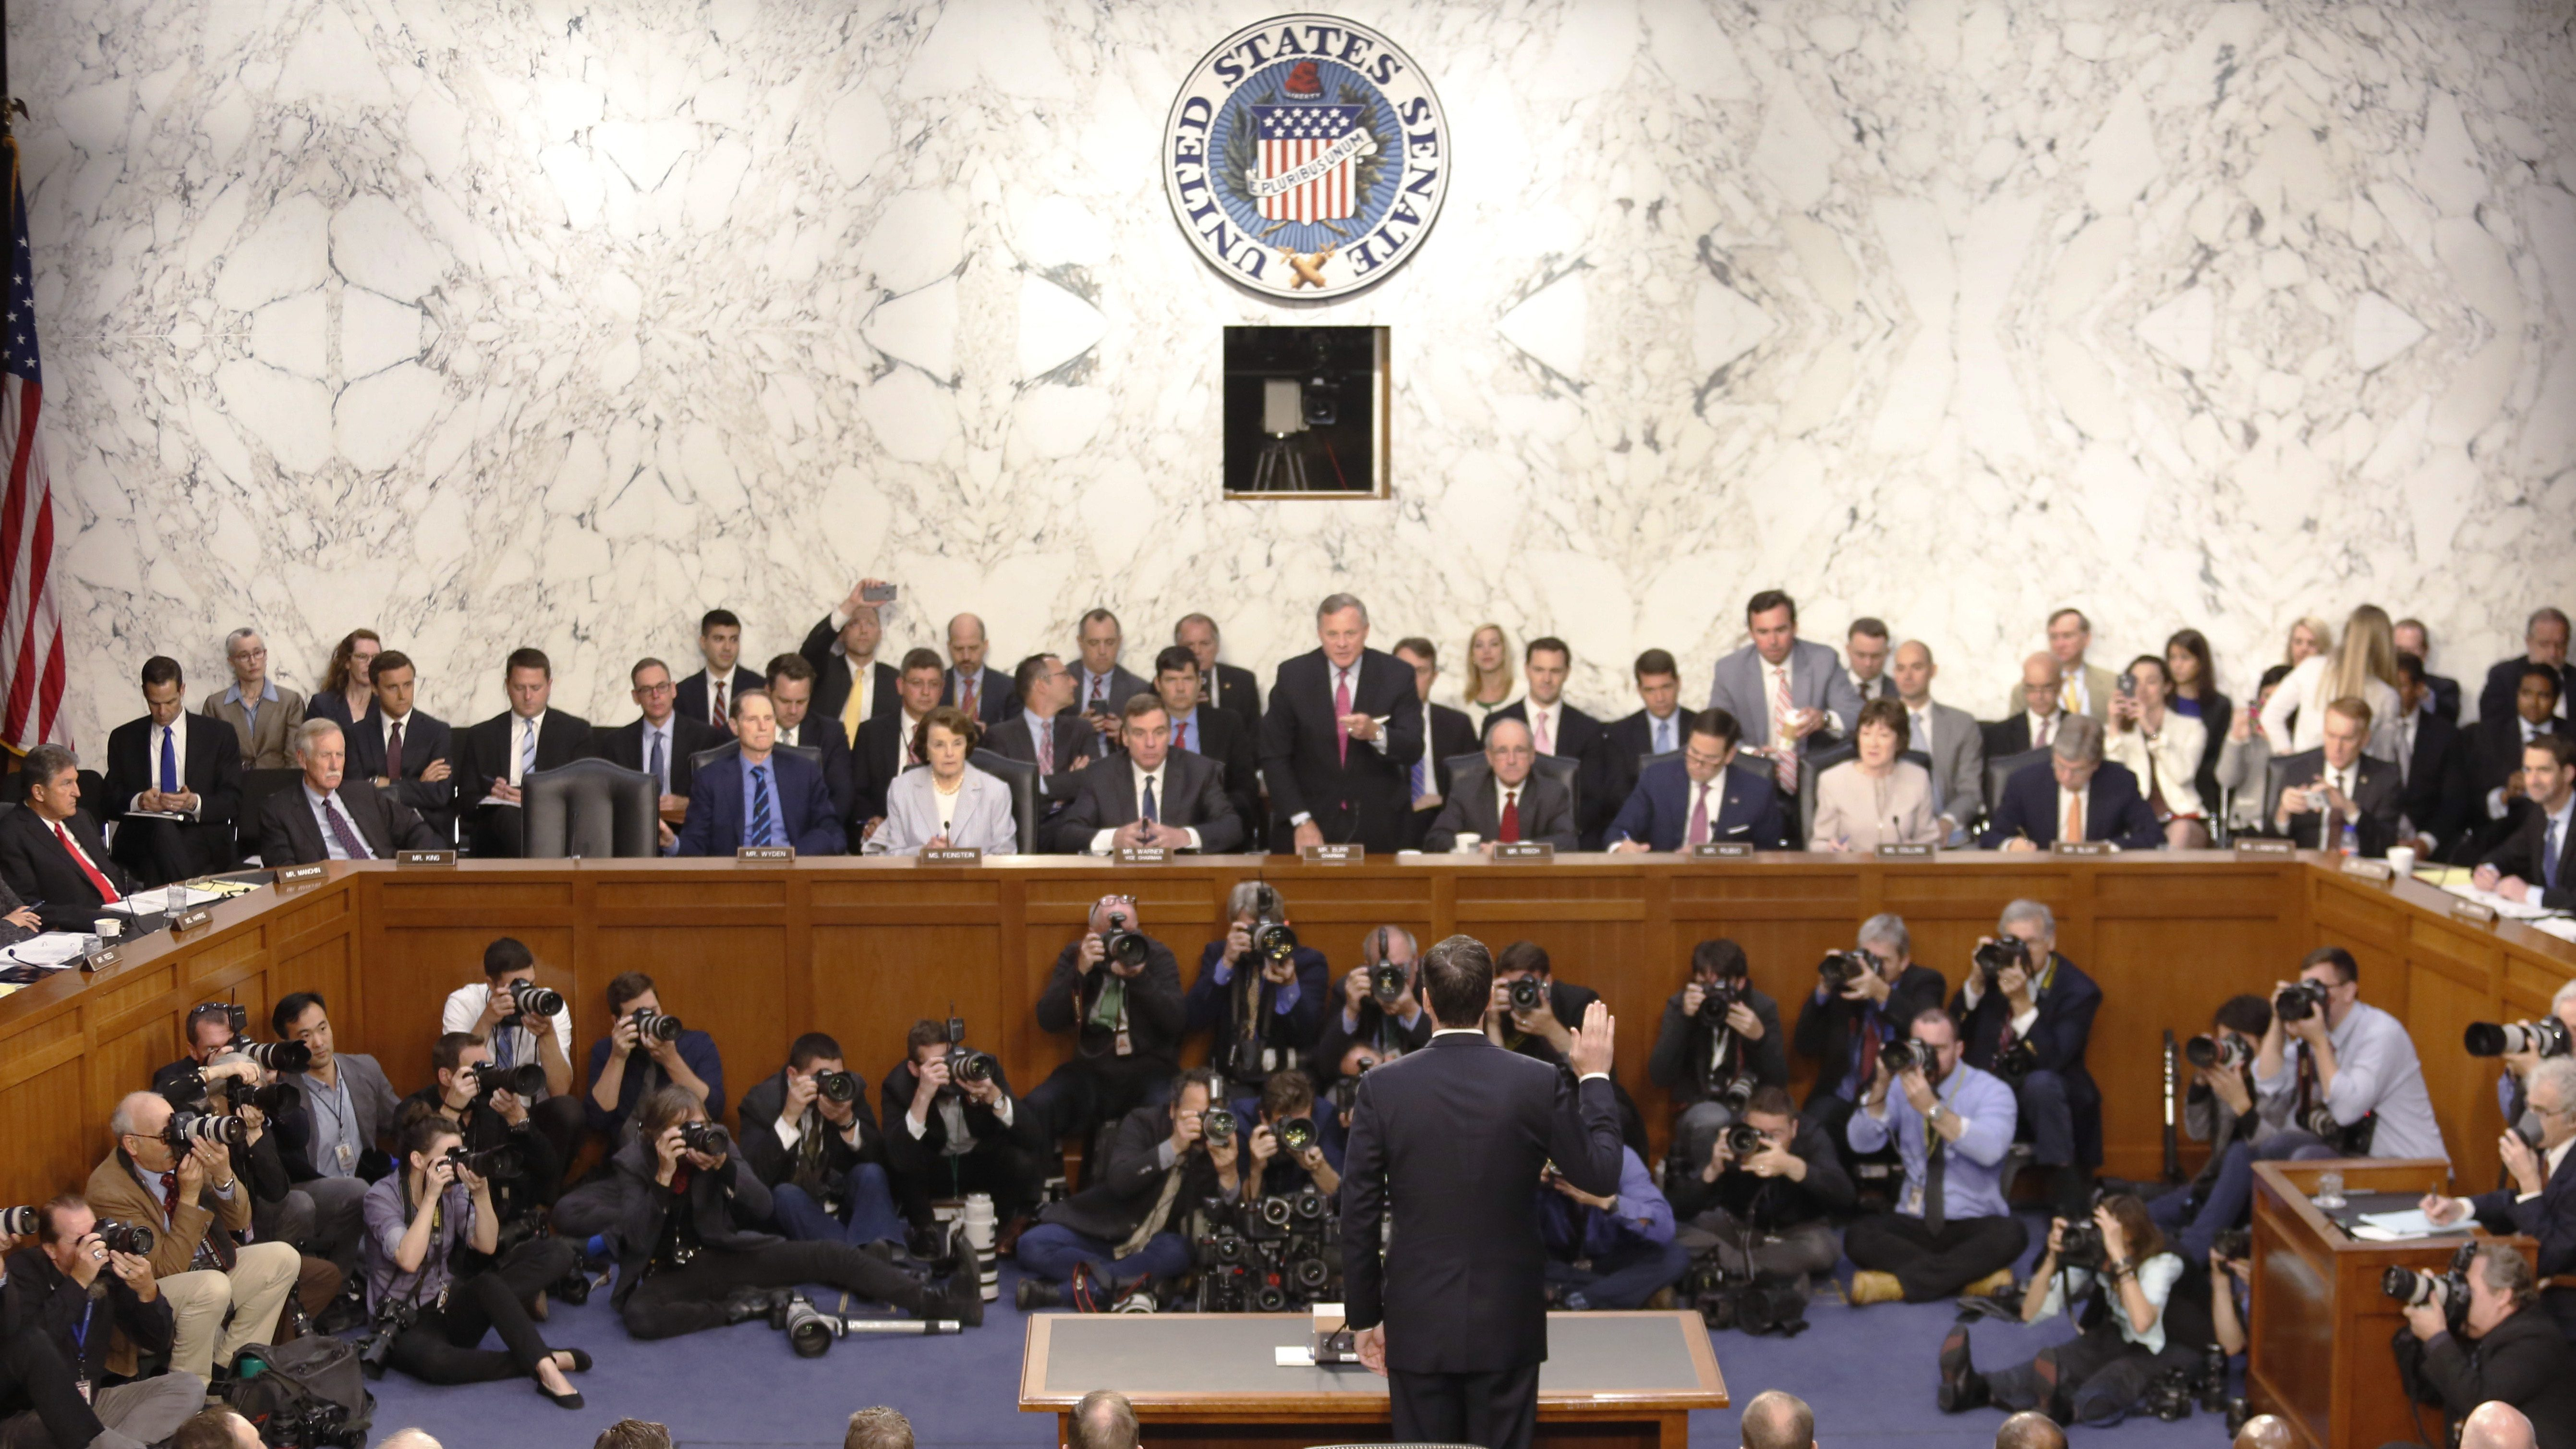 """Former FBI Director James Comey is sworn in to testify before a Senate Intelligence Committee hearing on """"Russian Federation Efforts to Interfere in the 2016 U.S. Elections"""" on Capitol Hill in Washington, U.S. June 8, 2017. REUTERS/Jim Bourg - RTX39OPY"""